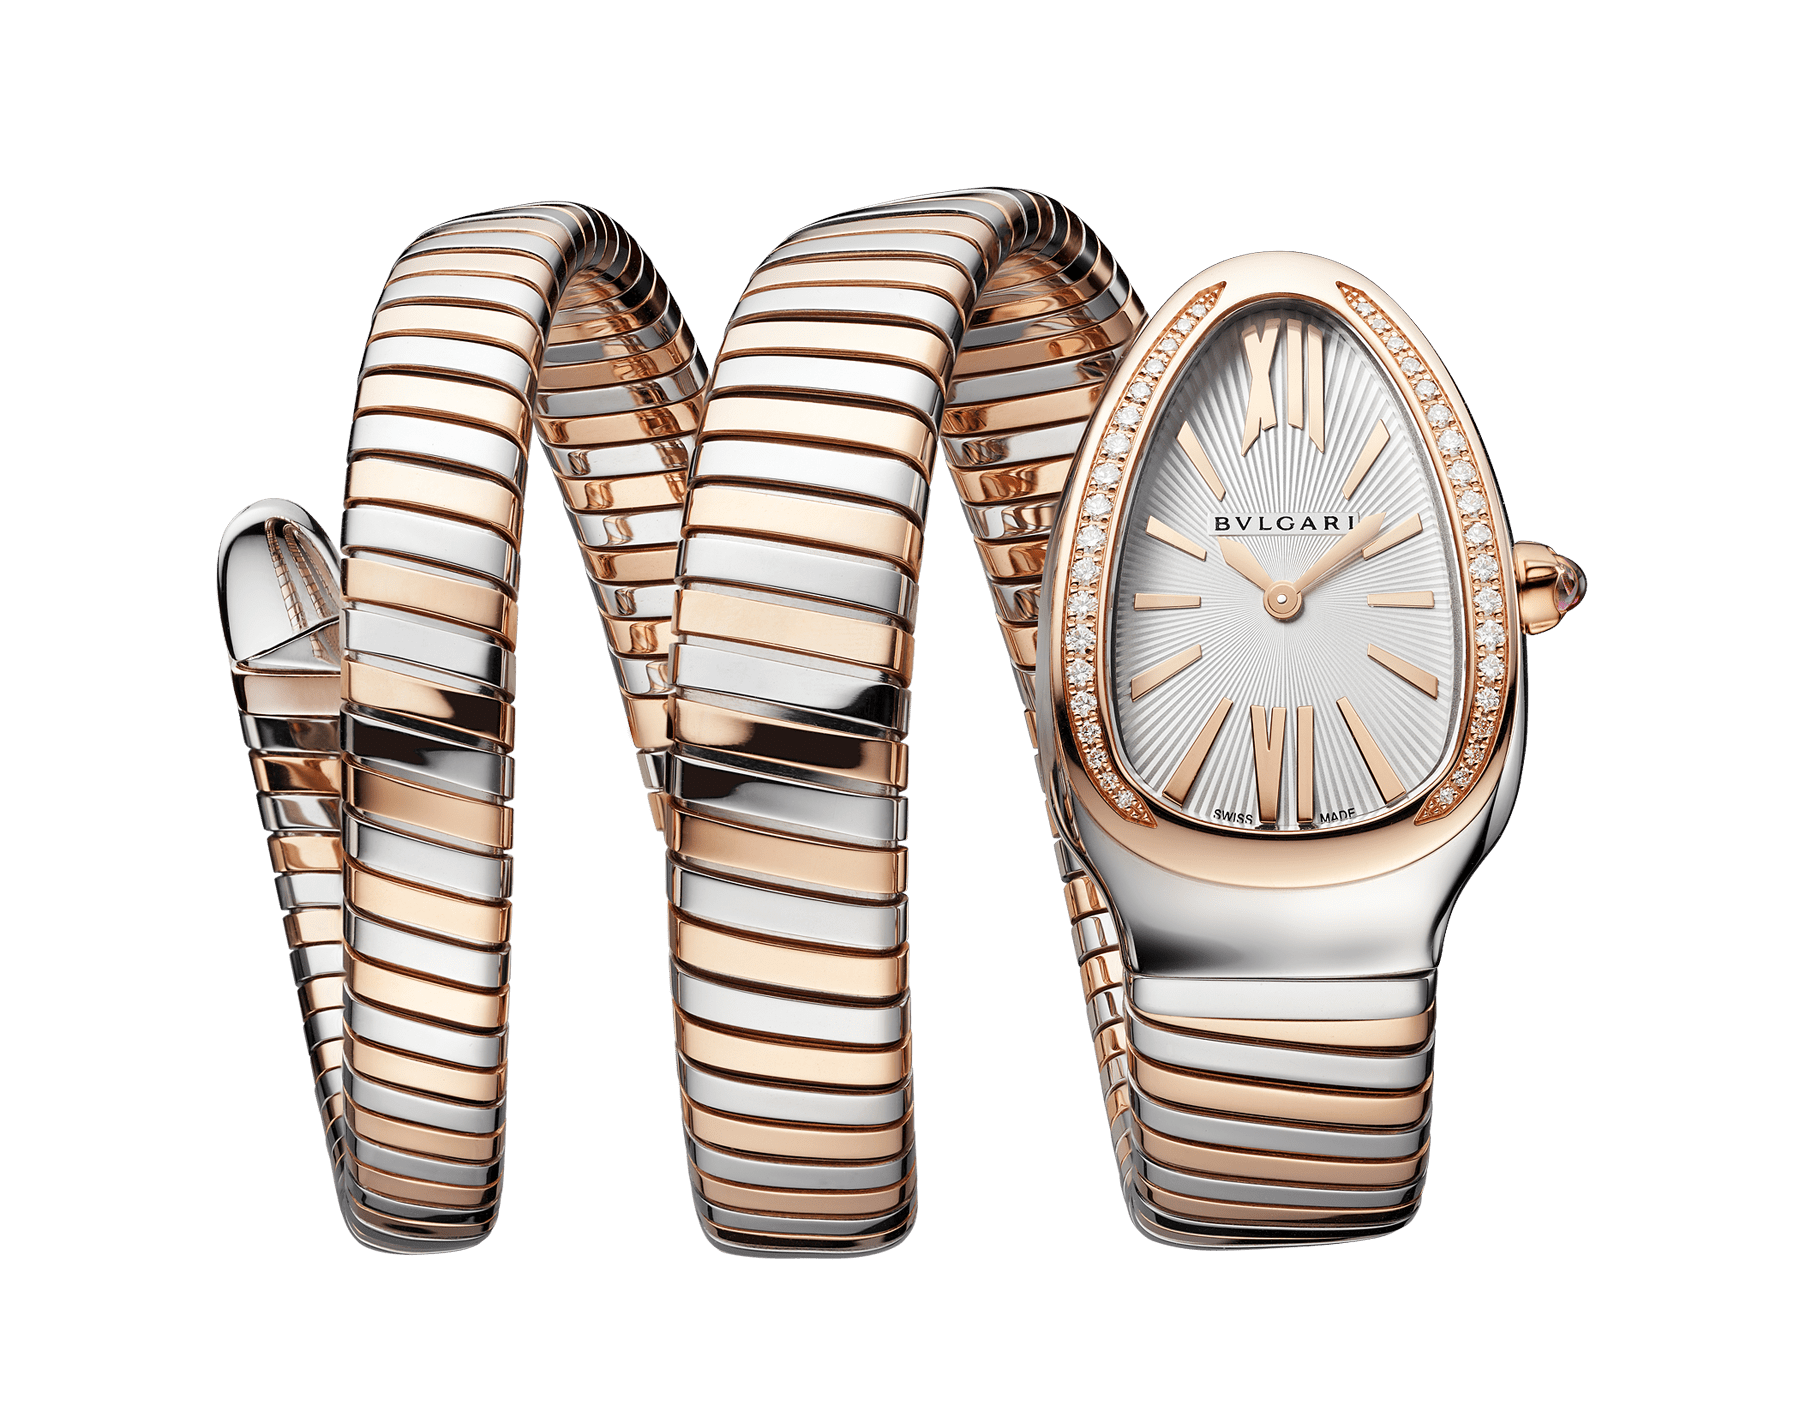 Serpenti Tubogas double spiral watch with stainless steel case, 18 kt rose gold bezel set with diamonds, silver opaline dial with guilloché soleil treatment, stainless steel and 18 kt rose gold bracelet 103149 image 1